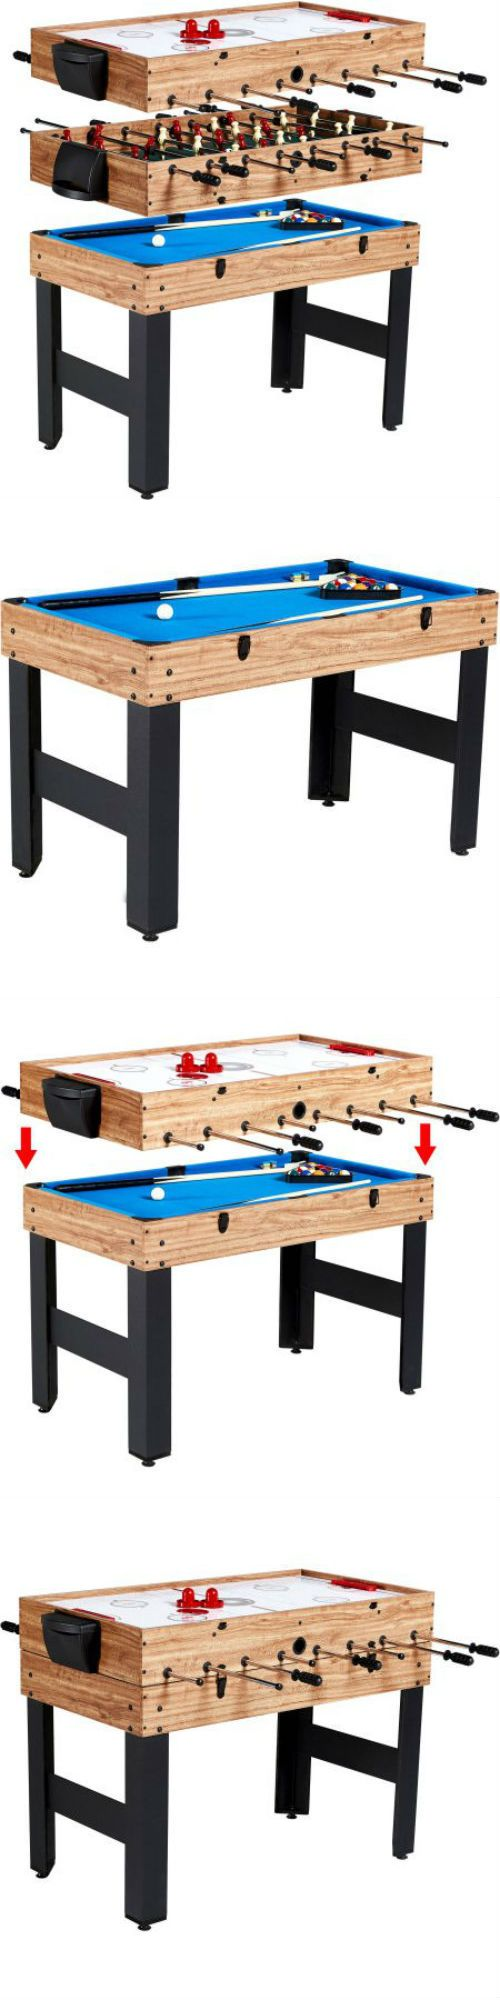 Air Hockey 36275: Md Sports 48 3-In-1 Combo Tablesports Multi Game Slide Hockey Soccer Billiards BUY IT NOW ONLY: $112.84